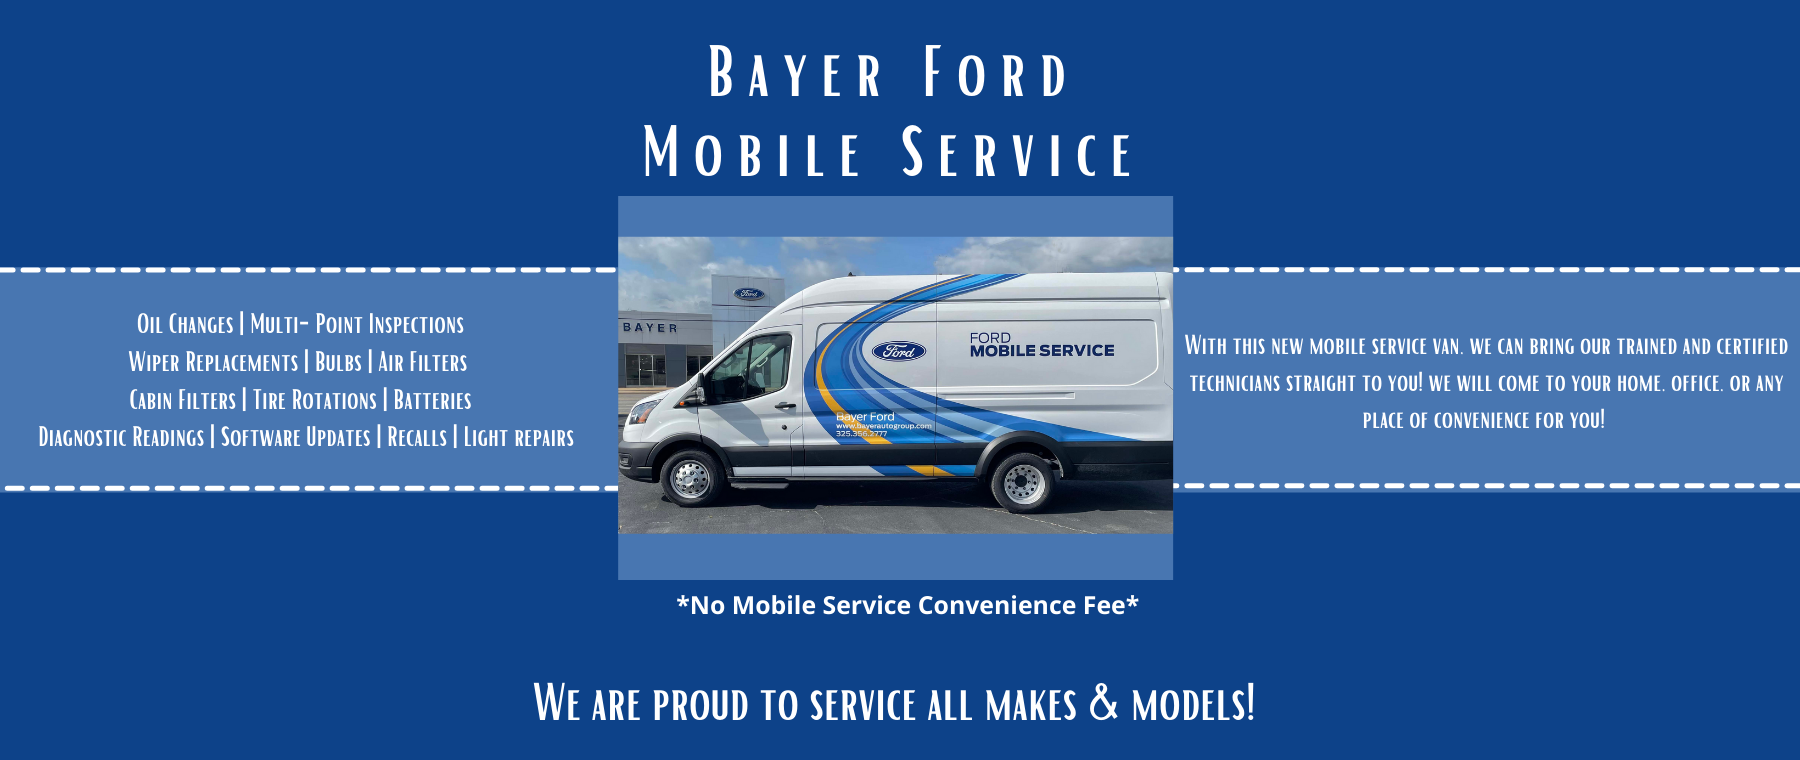 New Bayer Ford Mobile